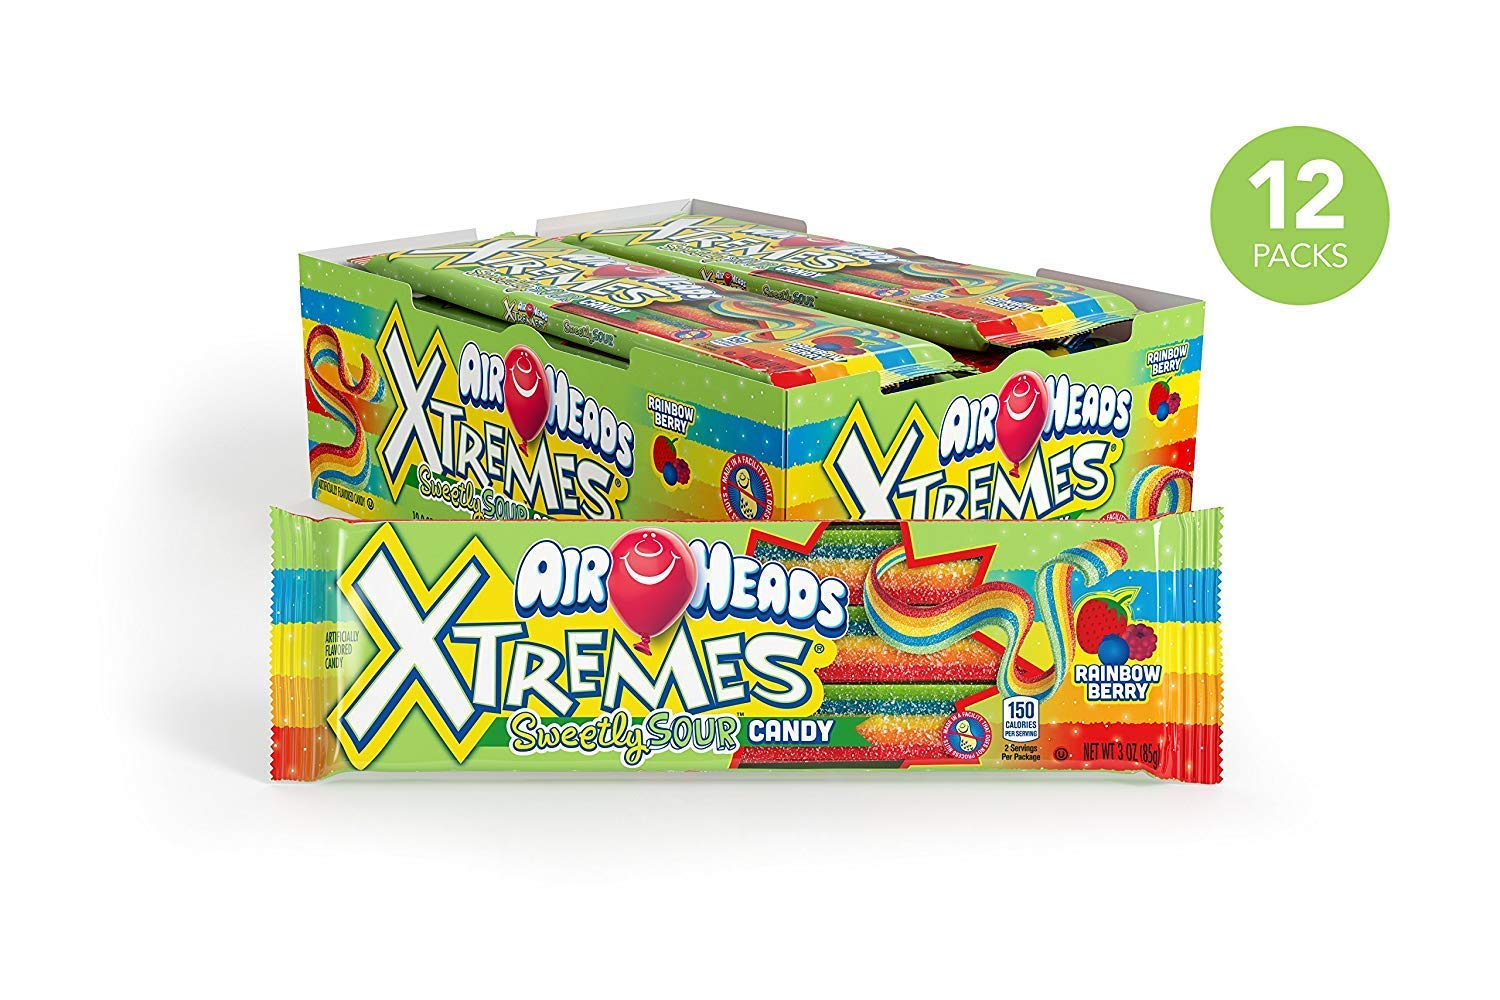 AirHeads Xtremes Sweetly Sour Candy Belts, Rainbow Berry, Party, Non Melting, 3 Ounce Pack of 60 (Pack of 60) by Airheads